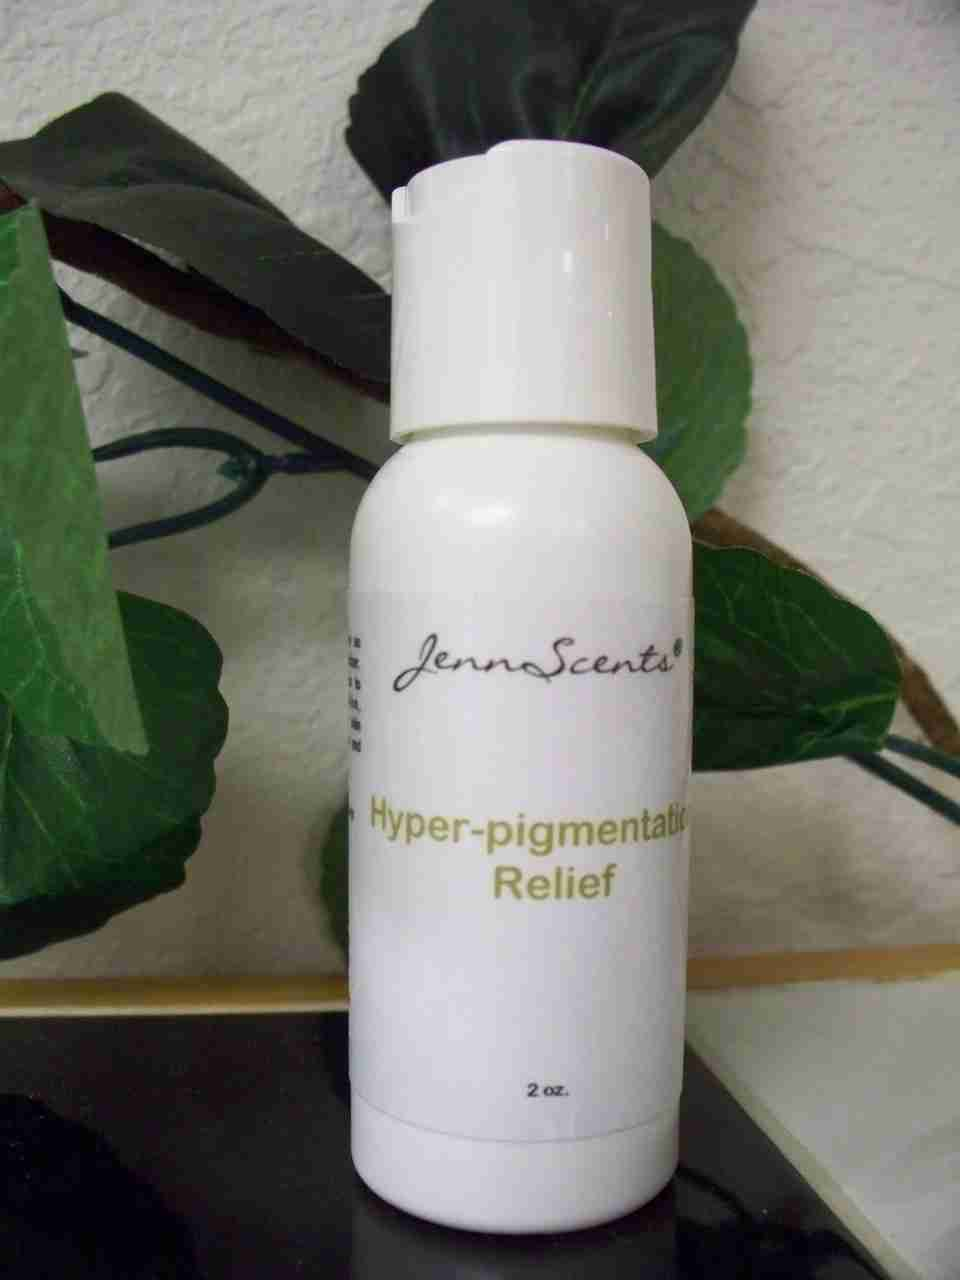 Hyperpigmentation Relief